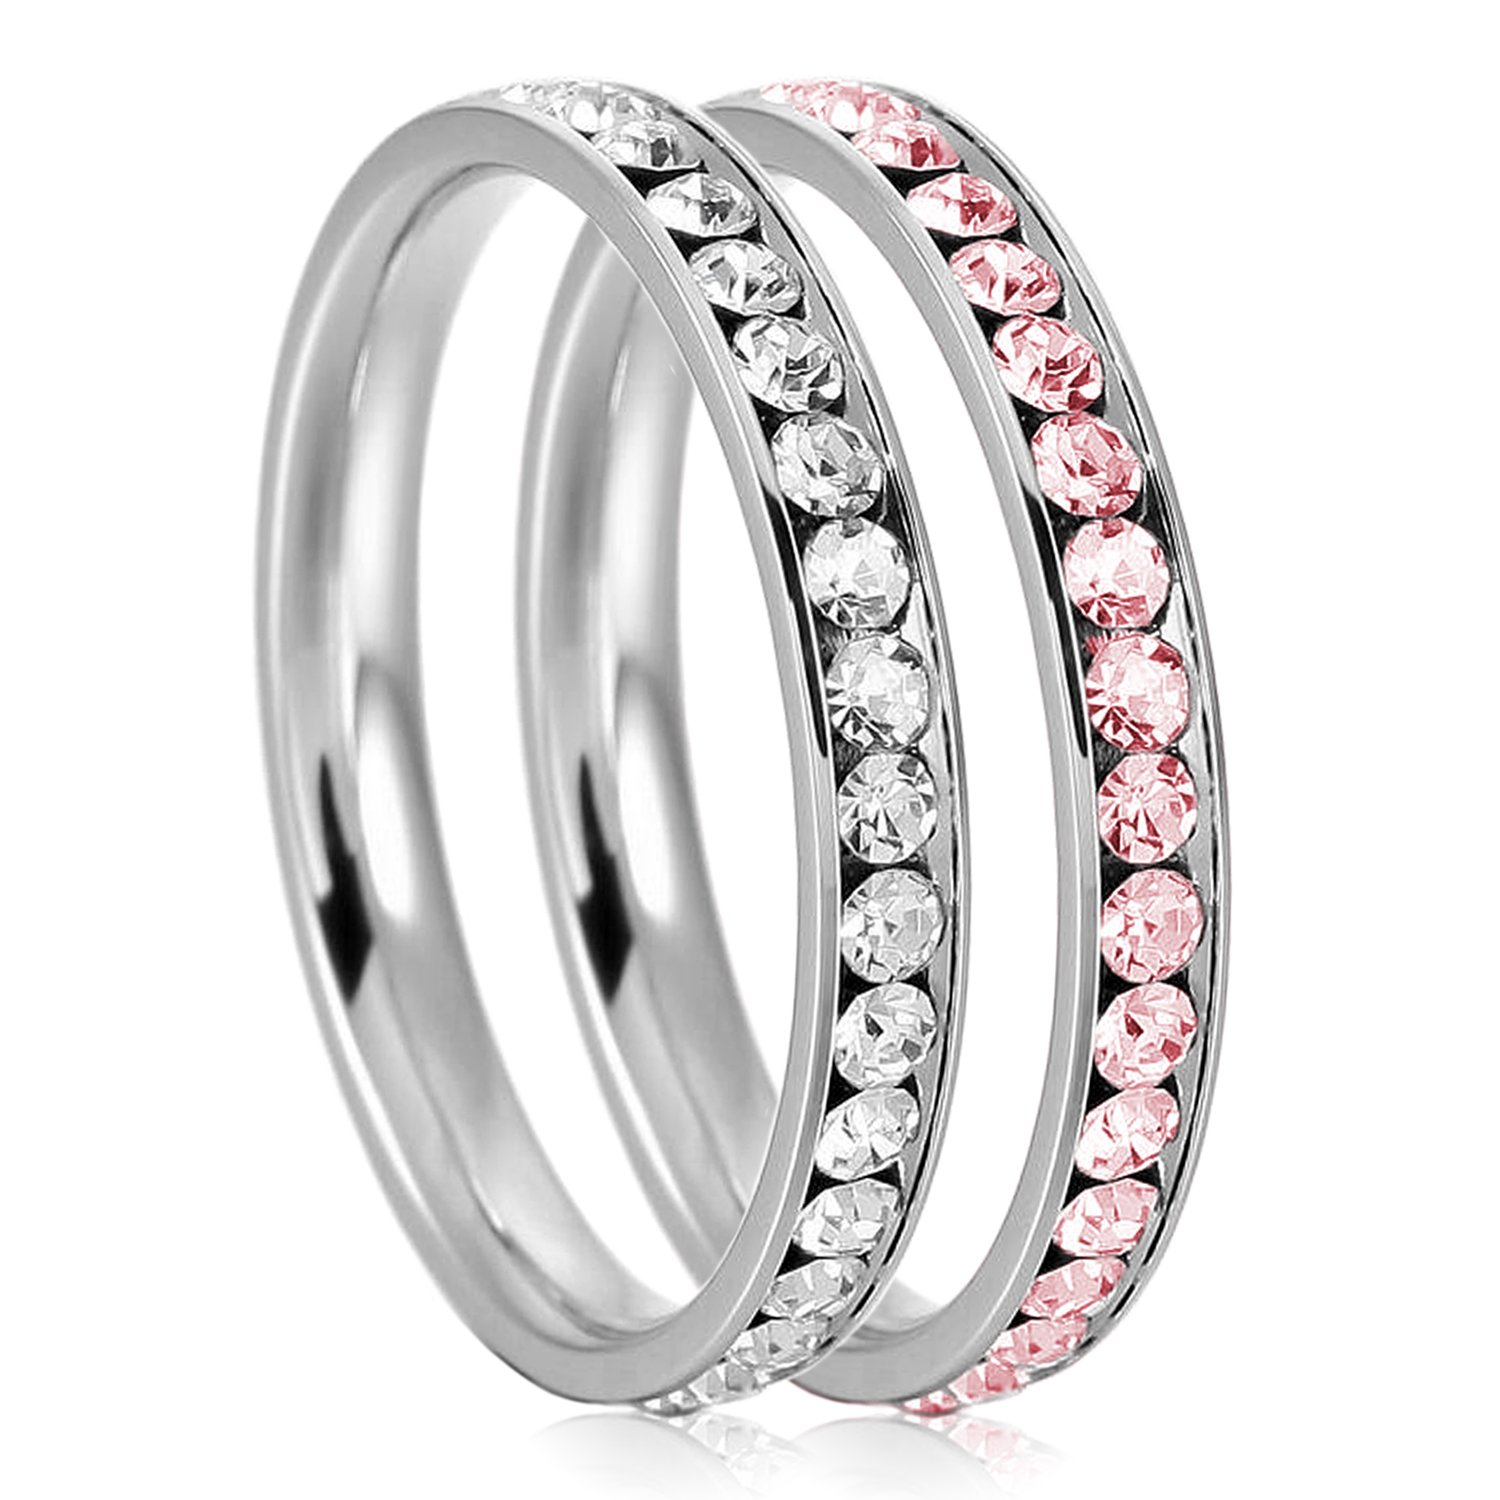 3mm Stainless Steel Eternity Clear & Rosaline Color Crystal Stackable Wedding Band Rings (2 pieces) Set Payless Outlet LJR973-SET05